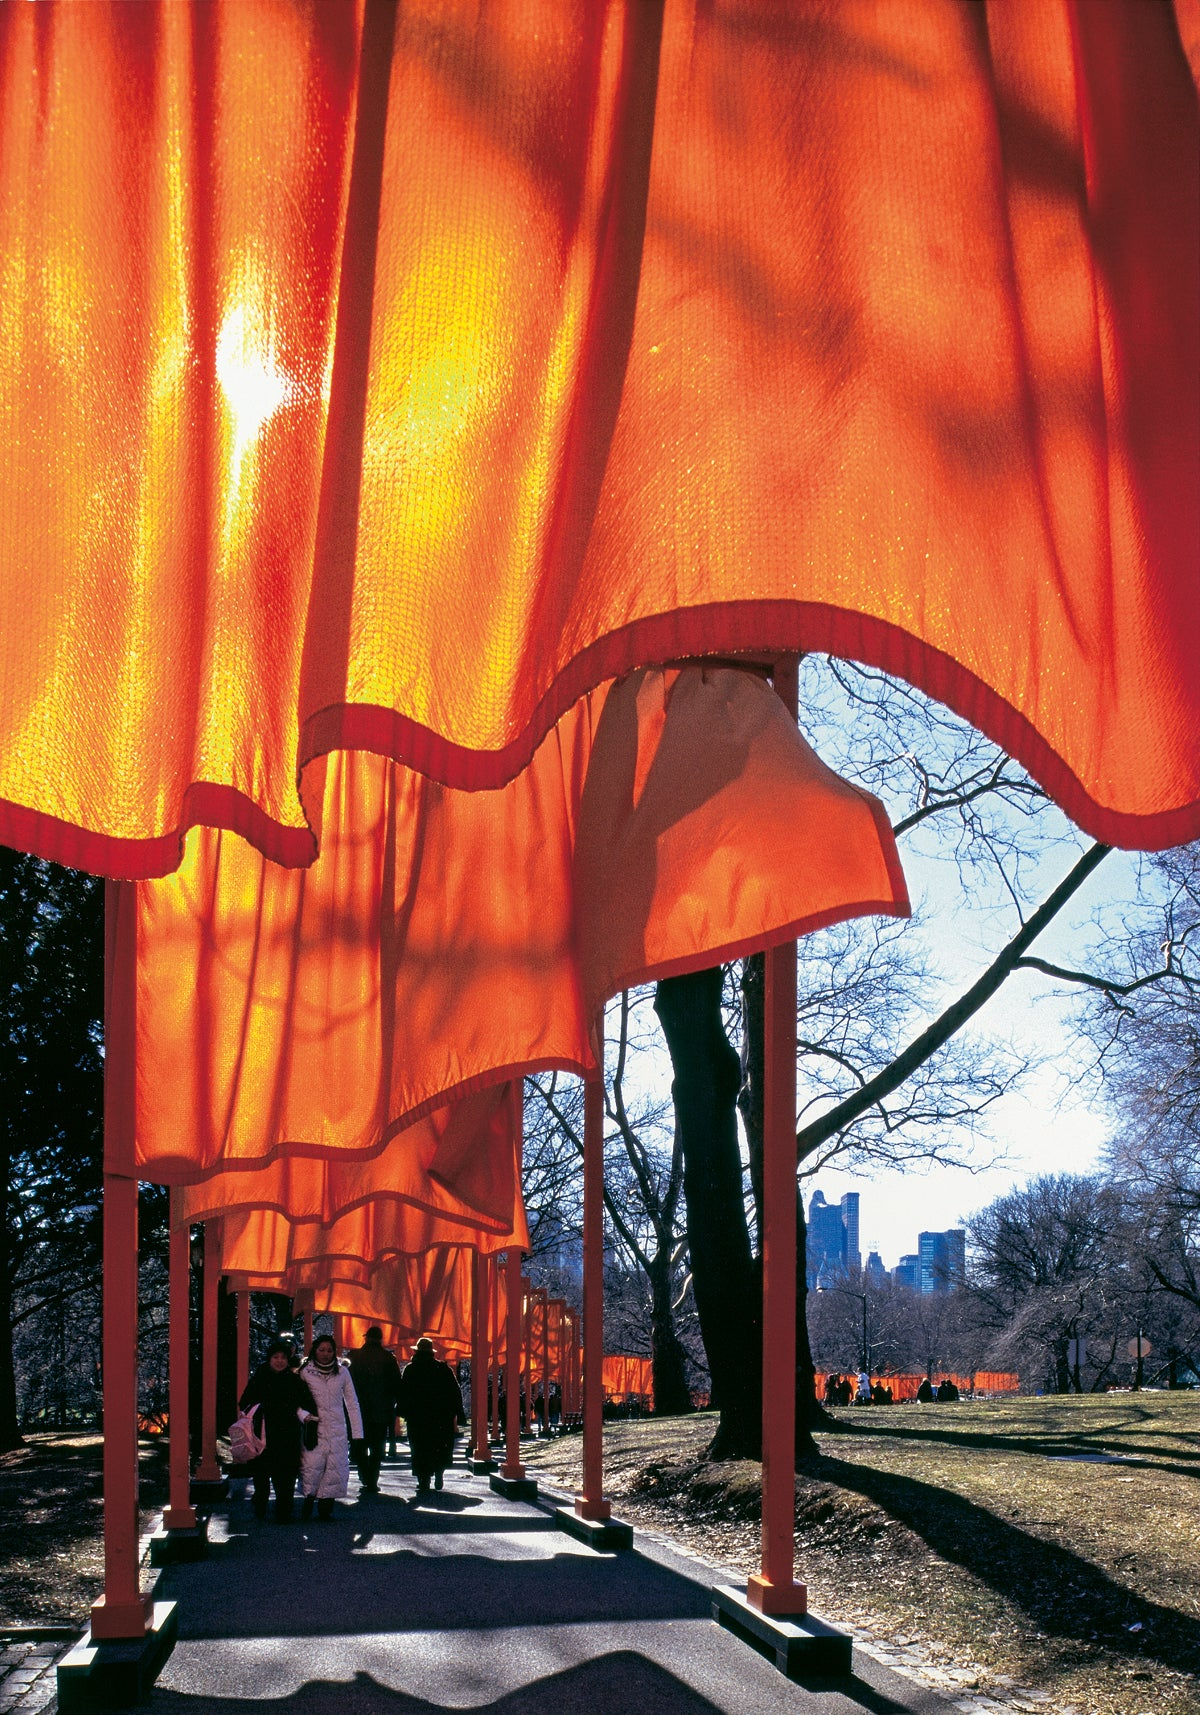 Christo & J.C. - The Gates Nr.51 von W. Volz